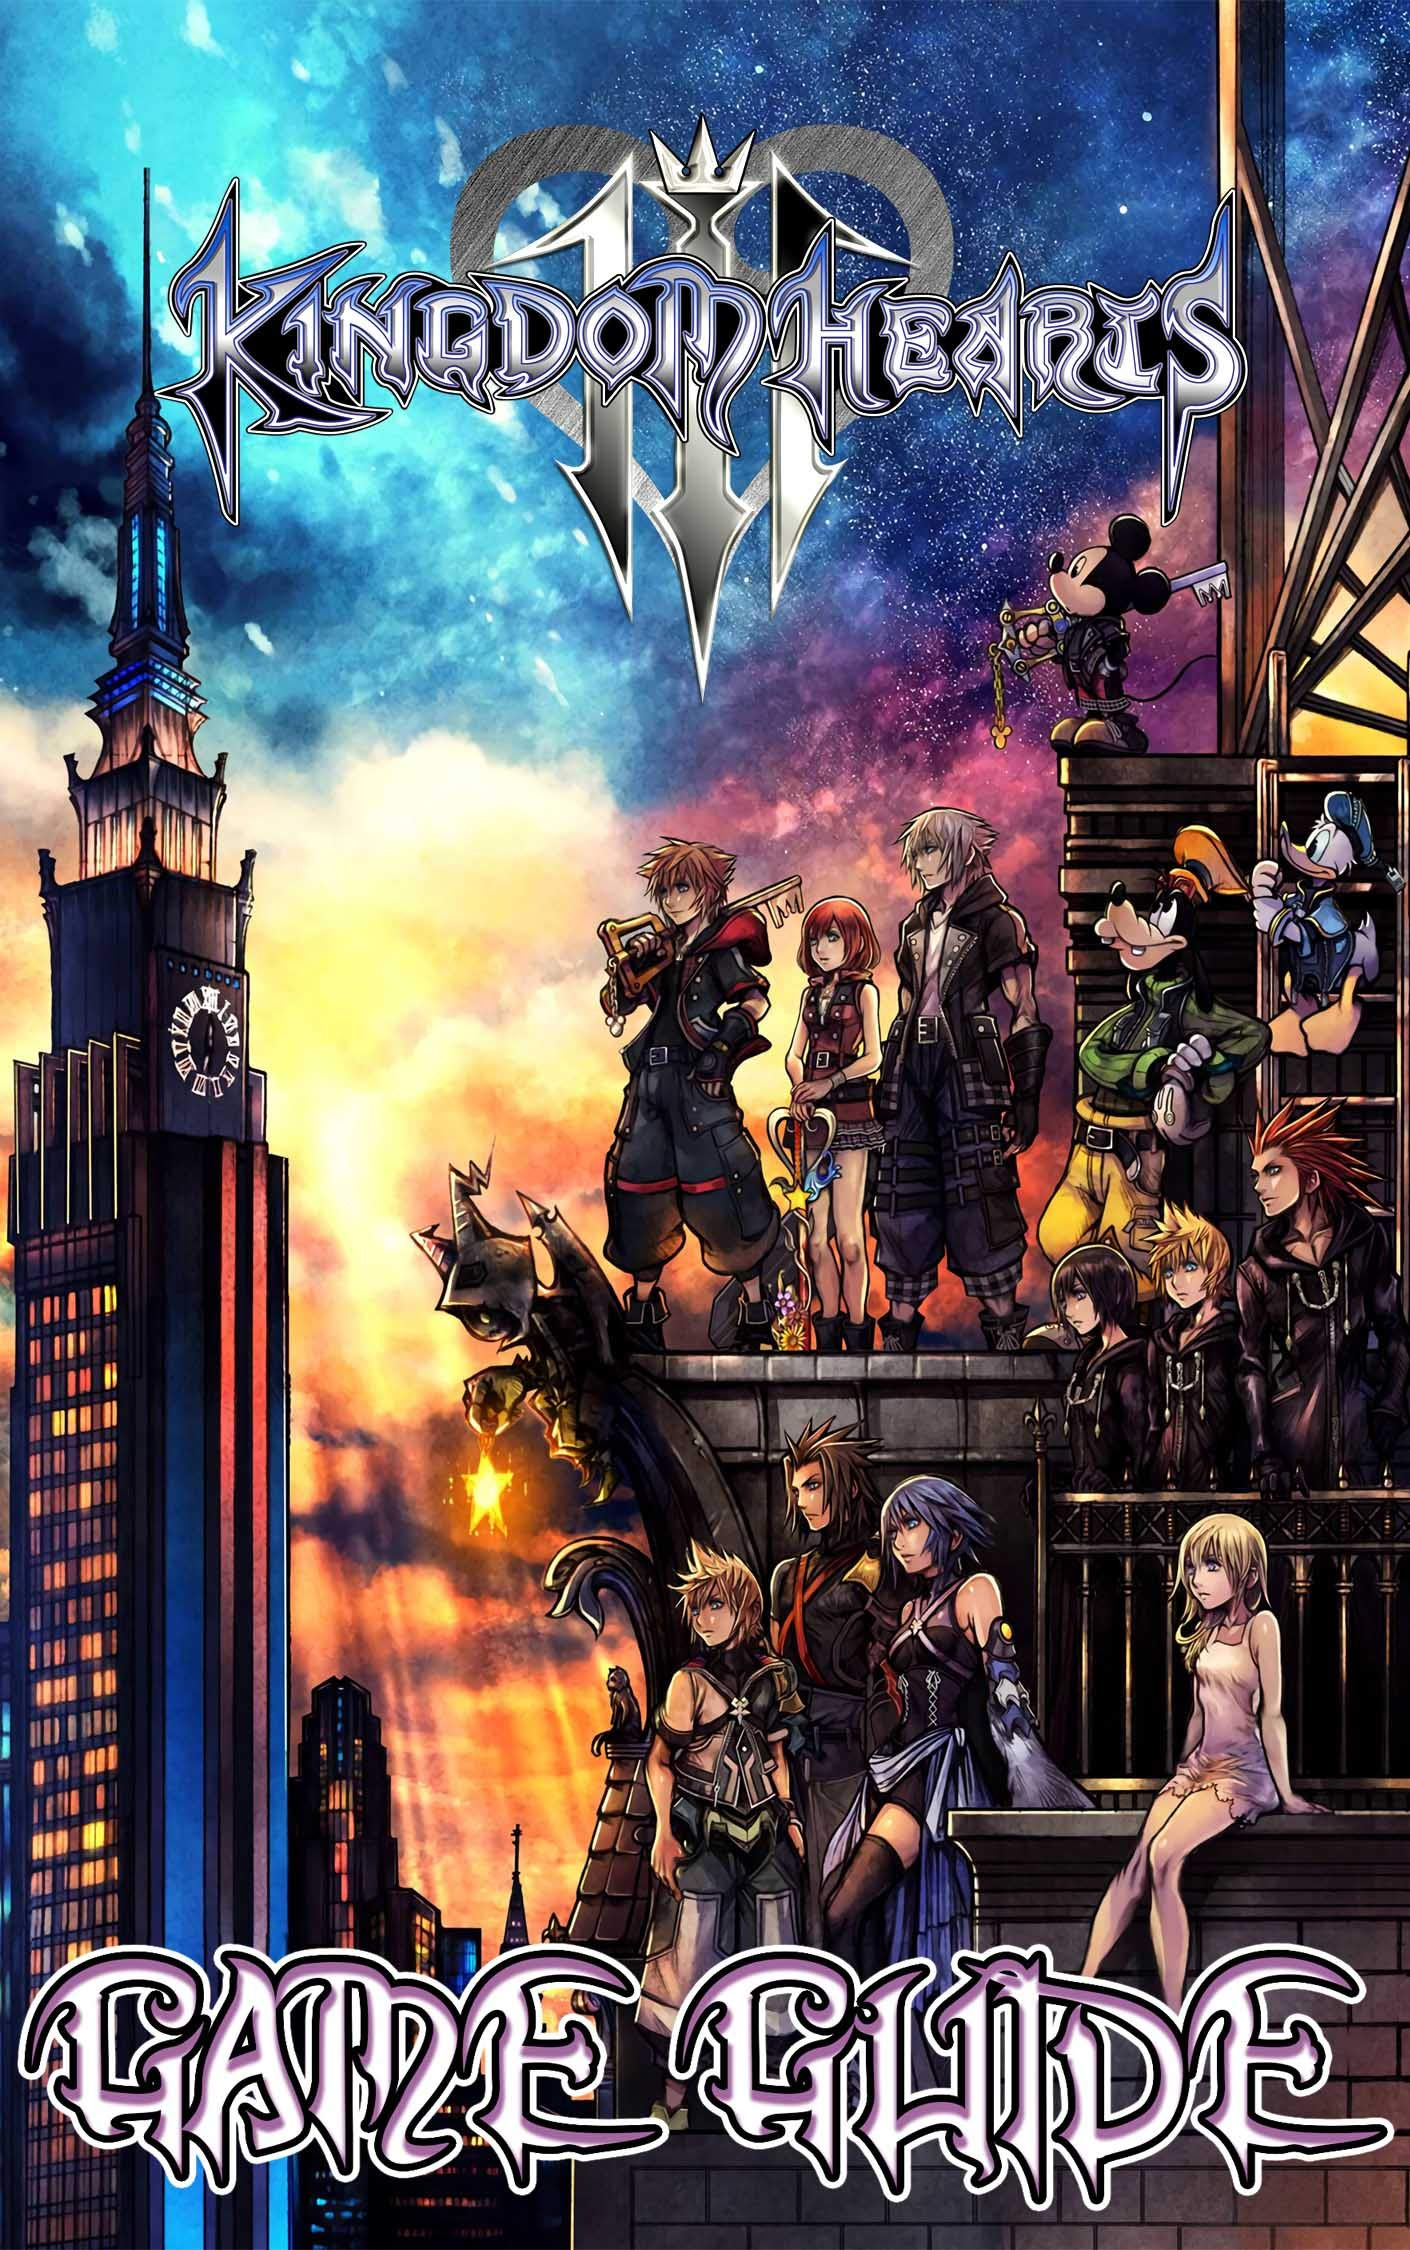 Kingdom Hearts 3 Game Guide: Walkthroughs, Tips, Tricks, Complete Strategy Guide